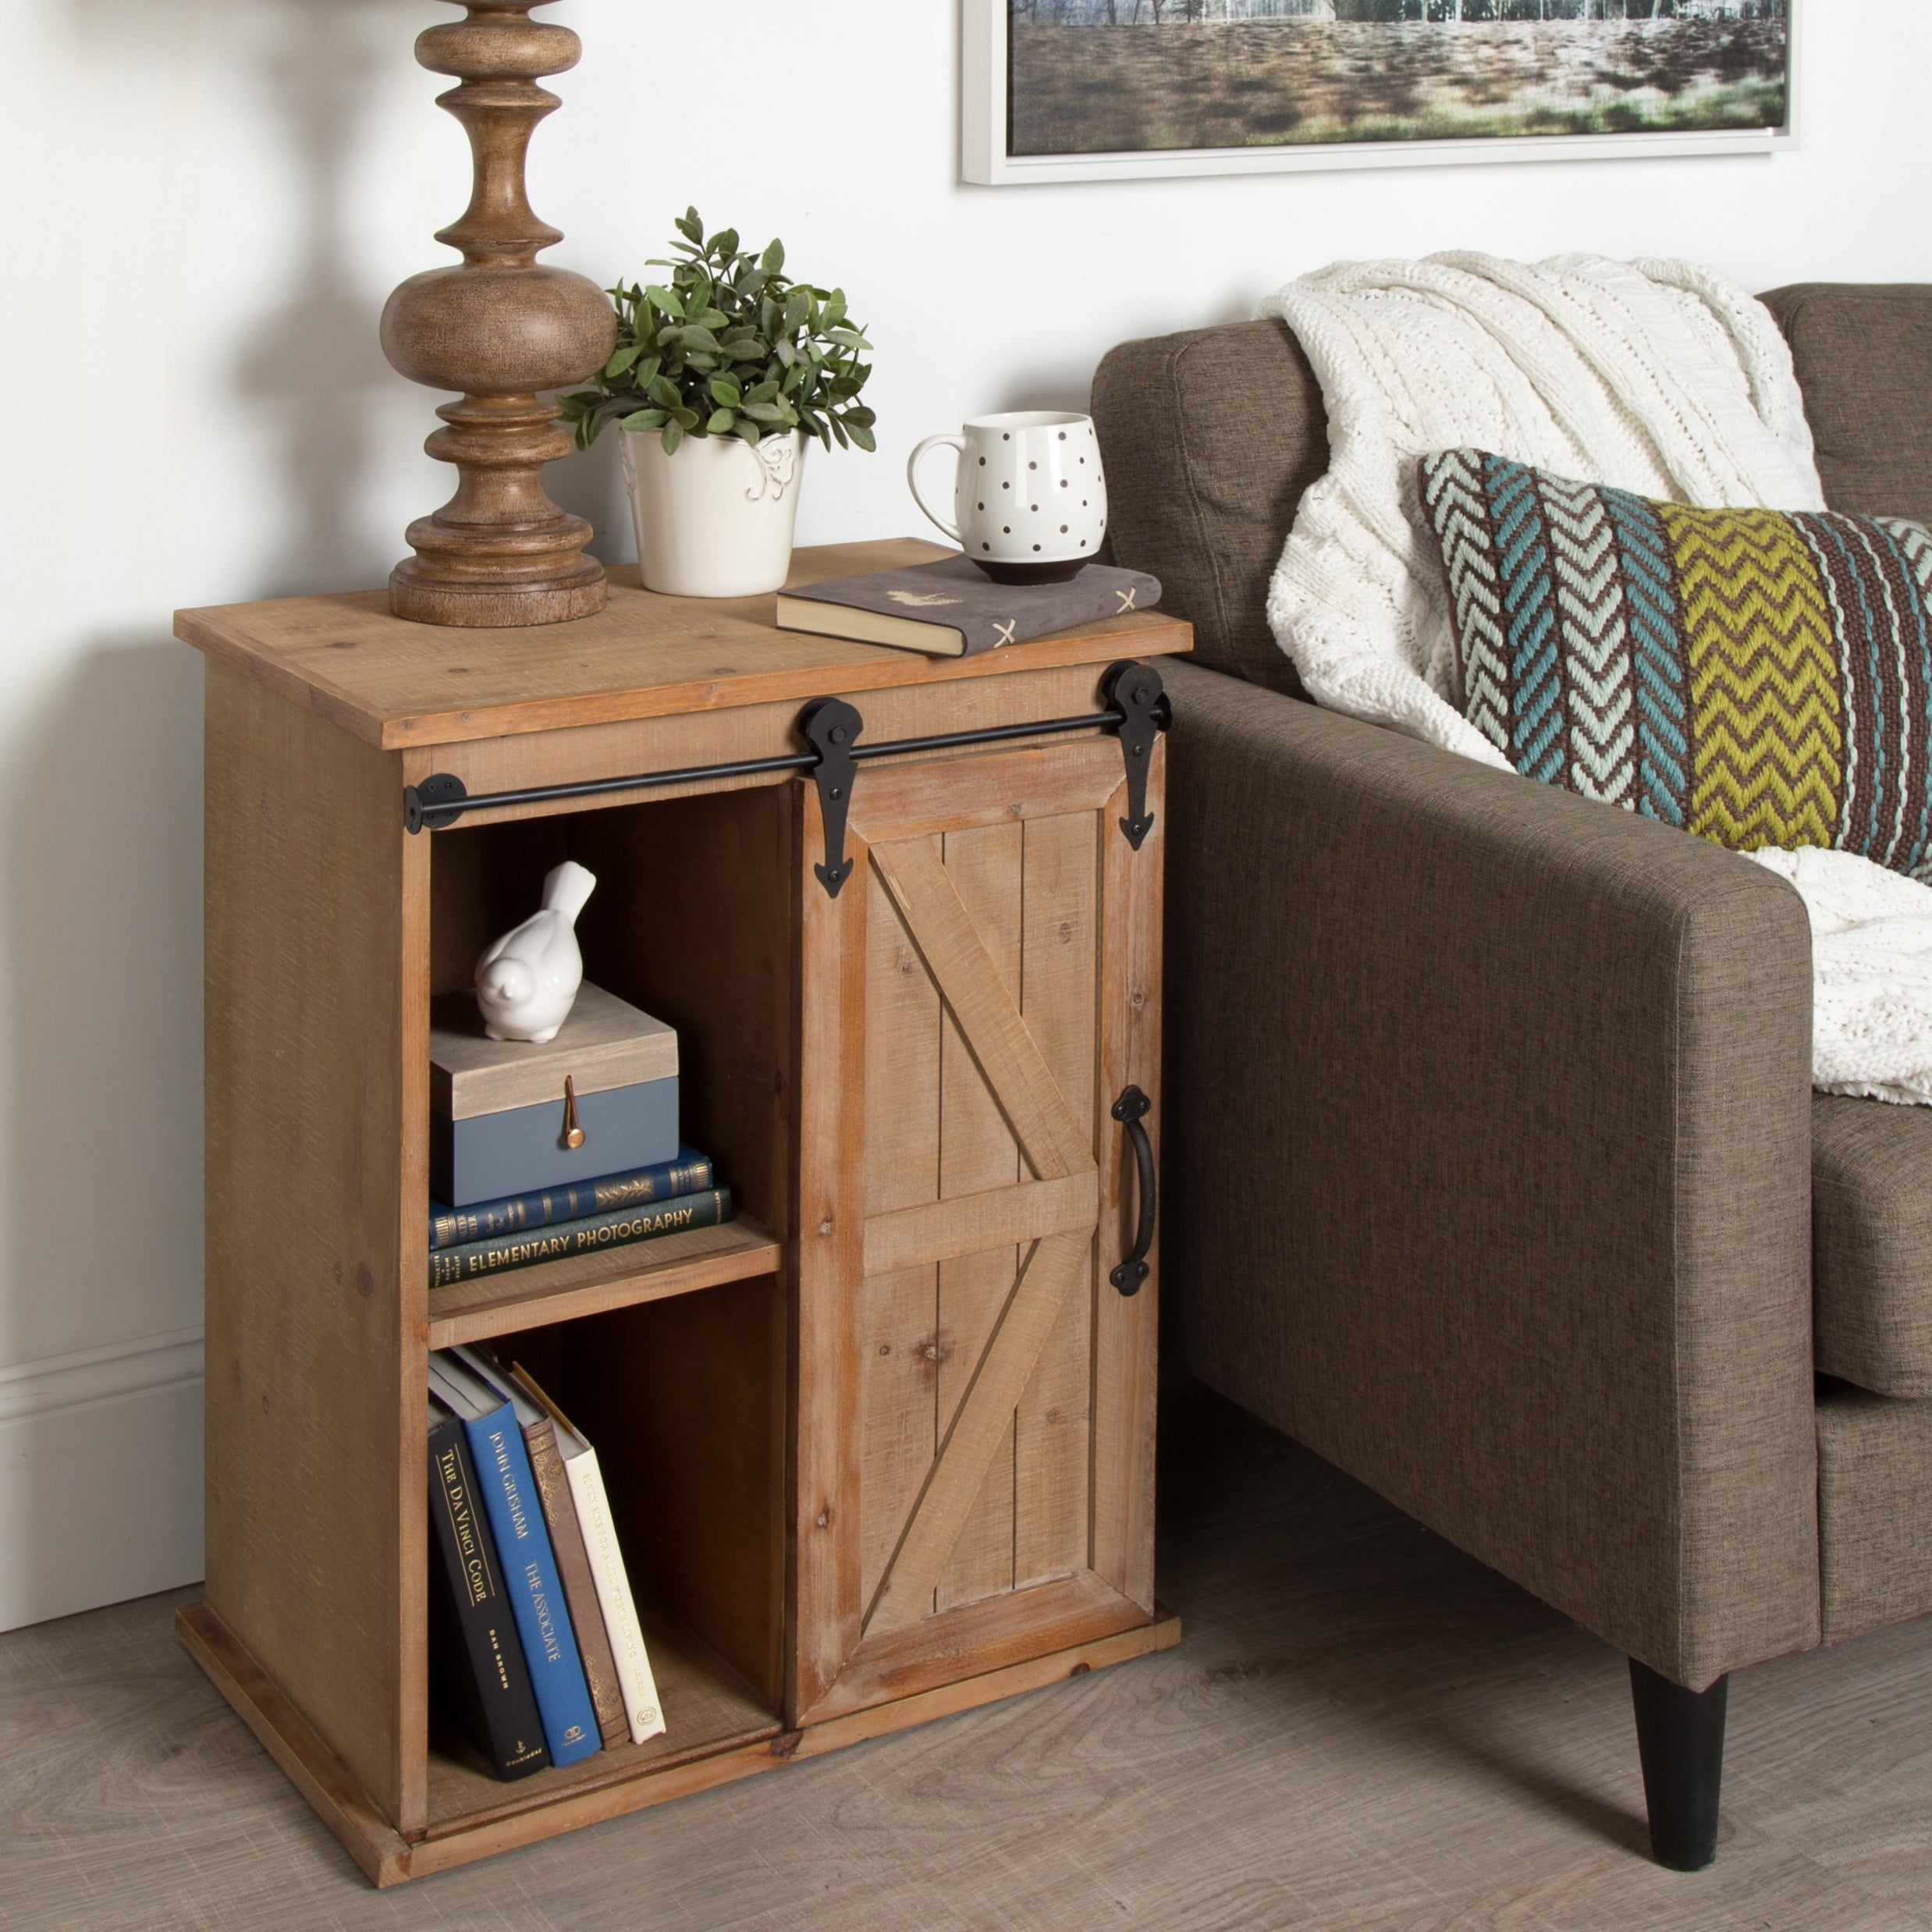 Shop Kate And Laurel Cates Wood End Table With Sliding Barn Door